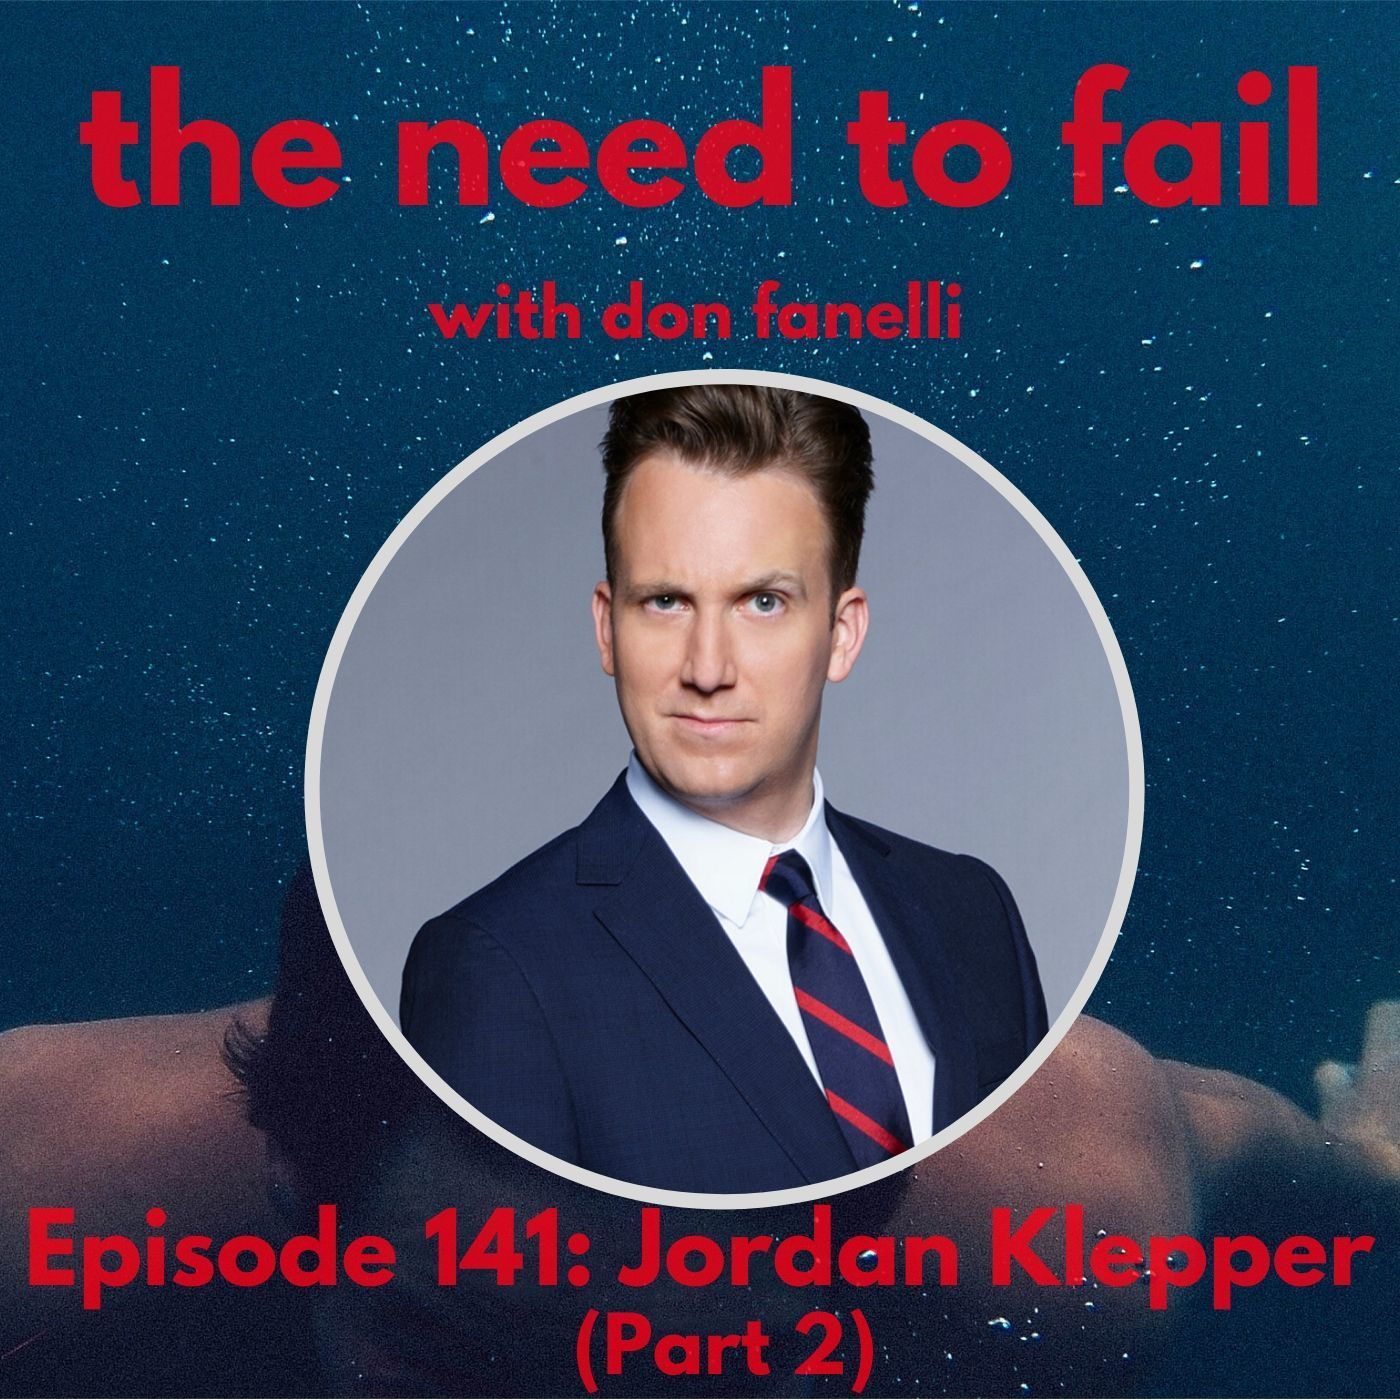 Episode 142: Jordan Klepper (Part 2)